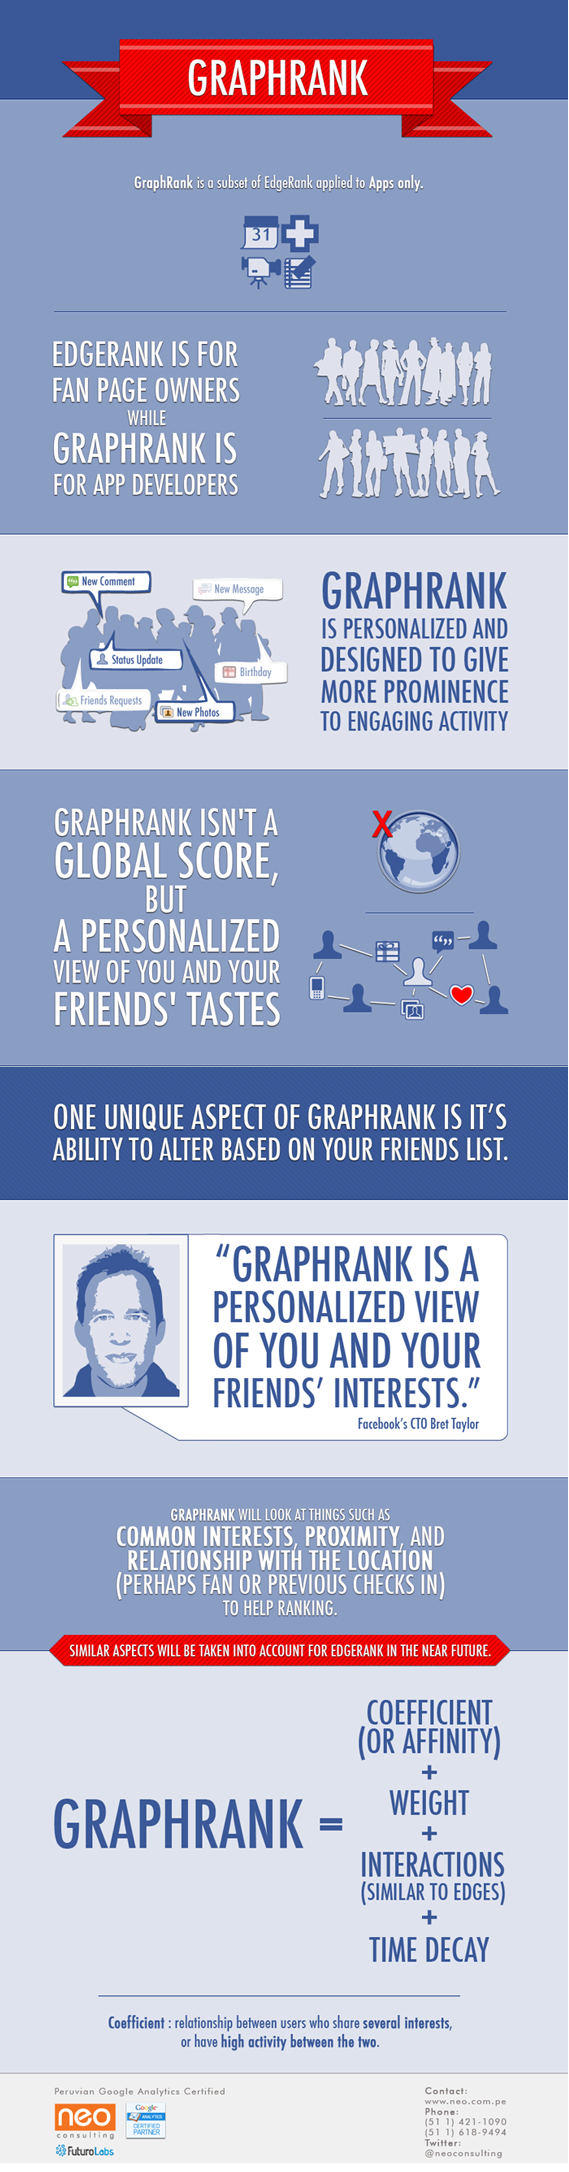 Facebook Graphrank